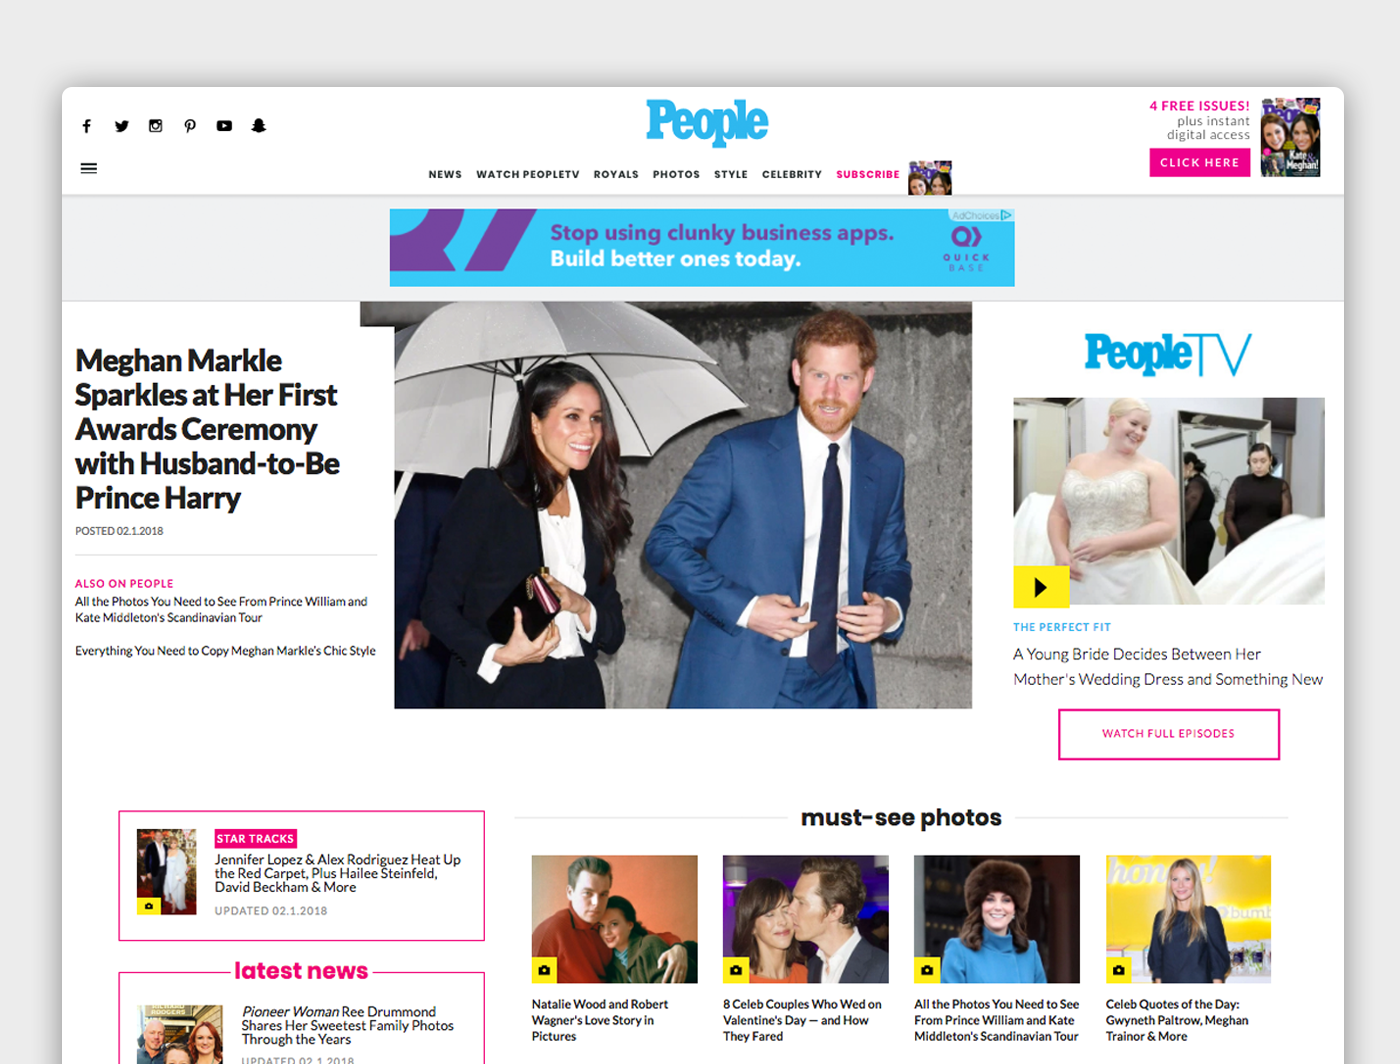 The People front page with navigation, a featured article, and various other features such as PeopleTV, must-see photos, and latest news